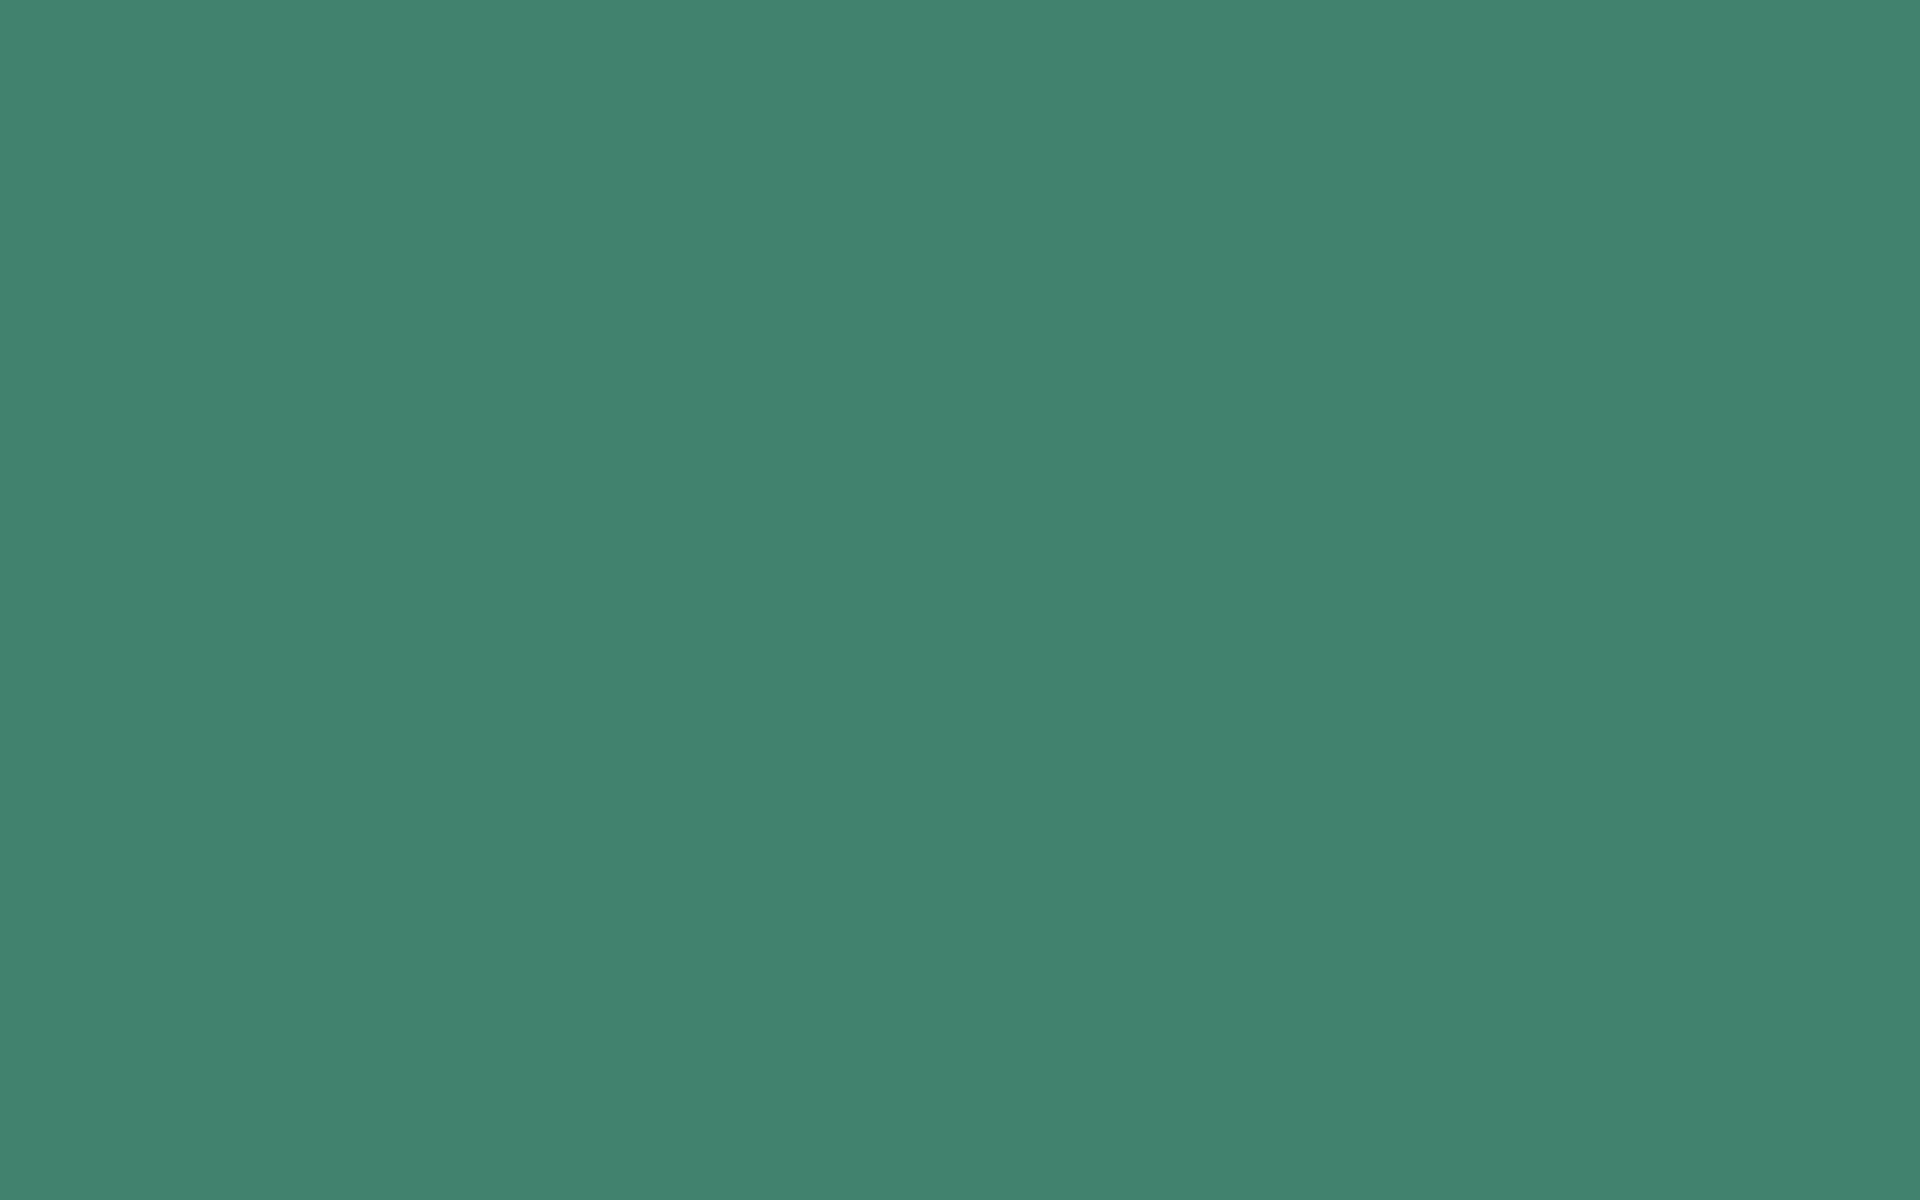 1920x1200 Viridian Solid Color Background